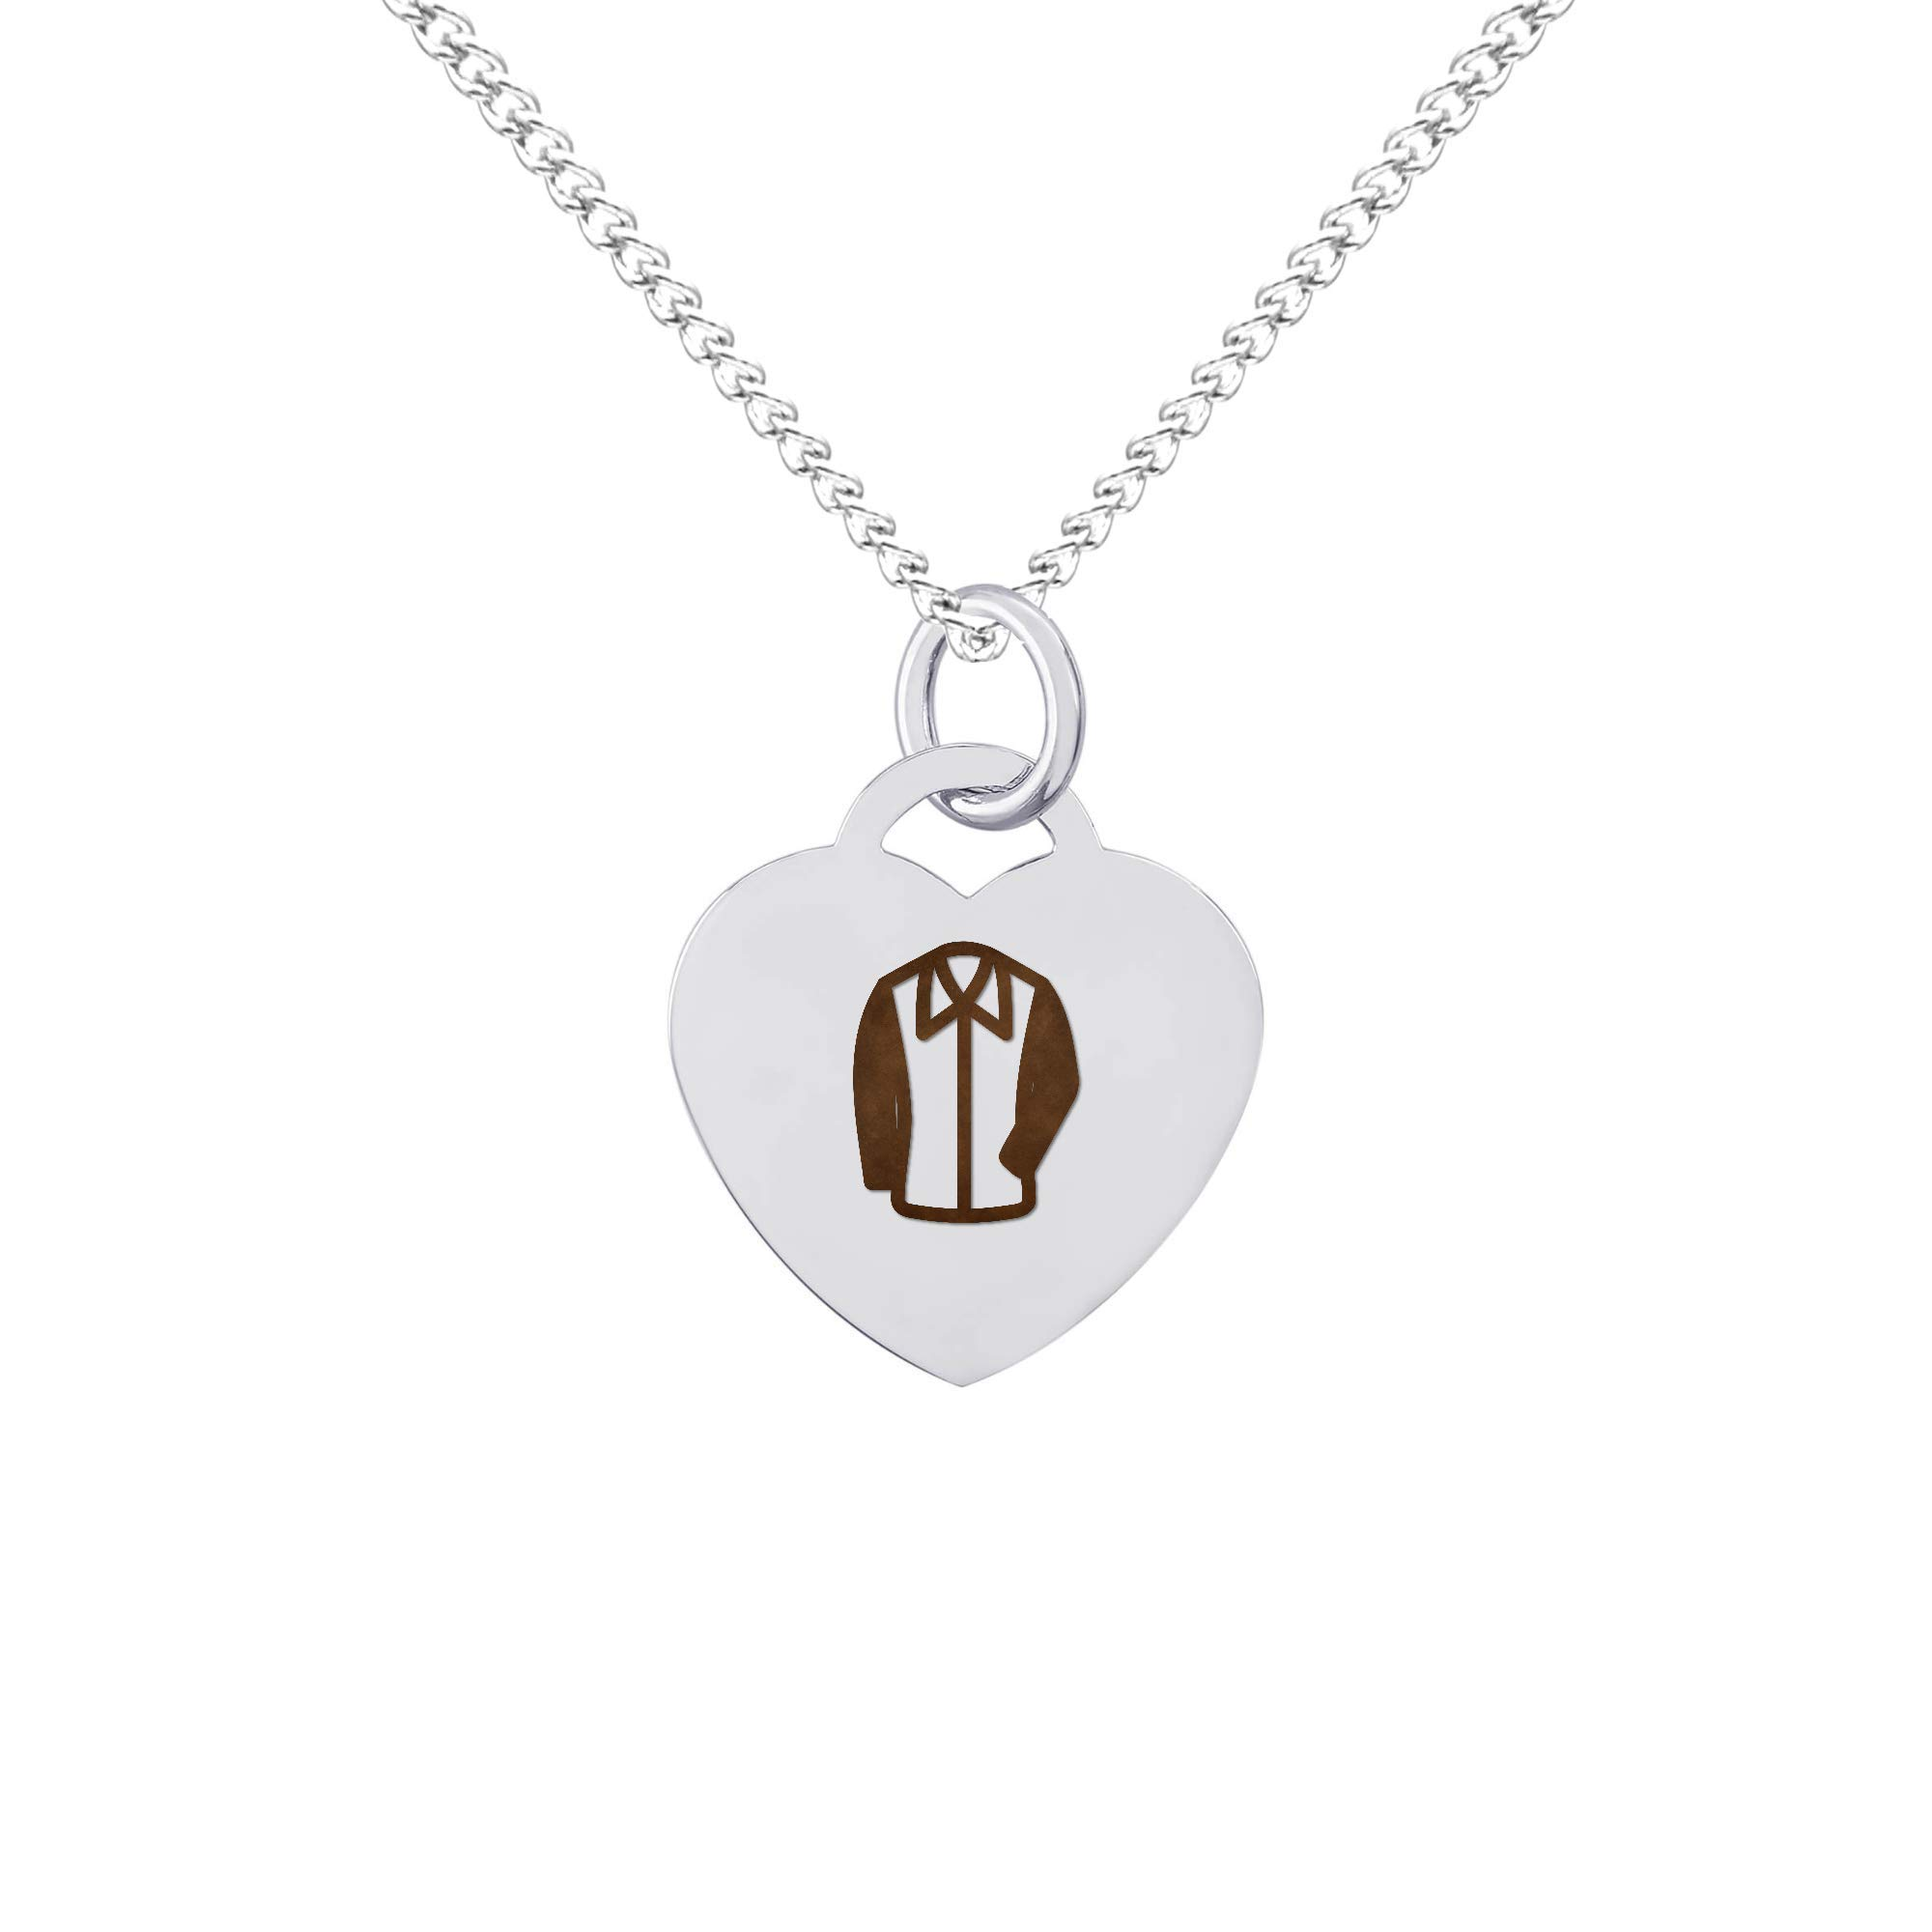 Loft Jewelry Jacket Clothing Polished Stainless Steel Charm Necklace Chain, Item 607791